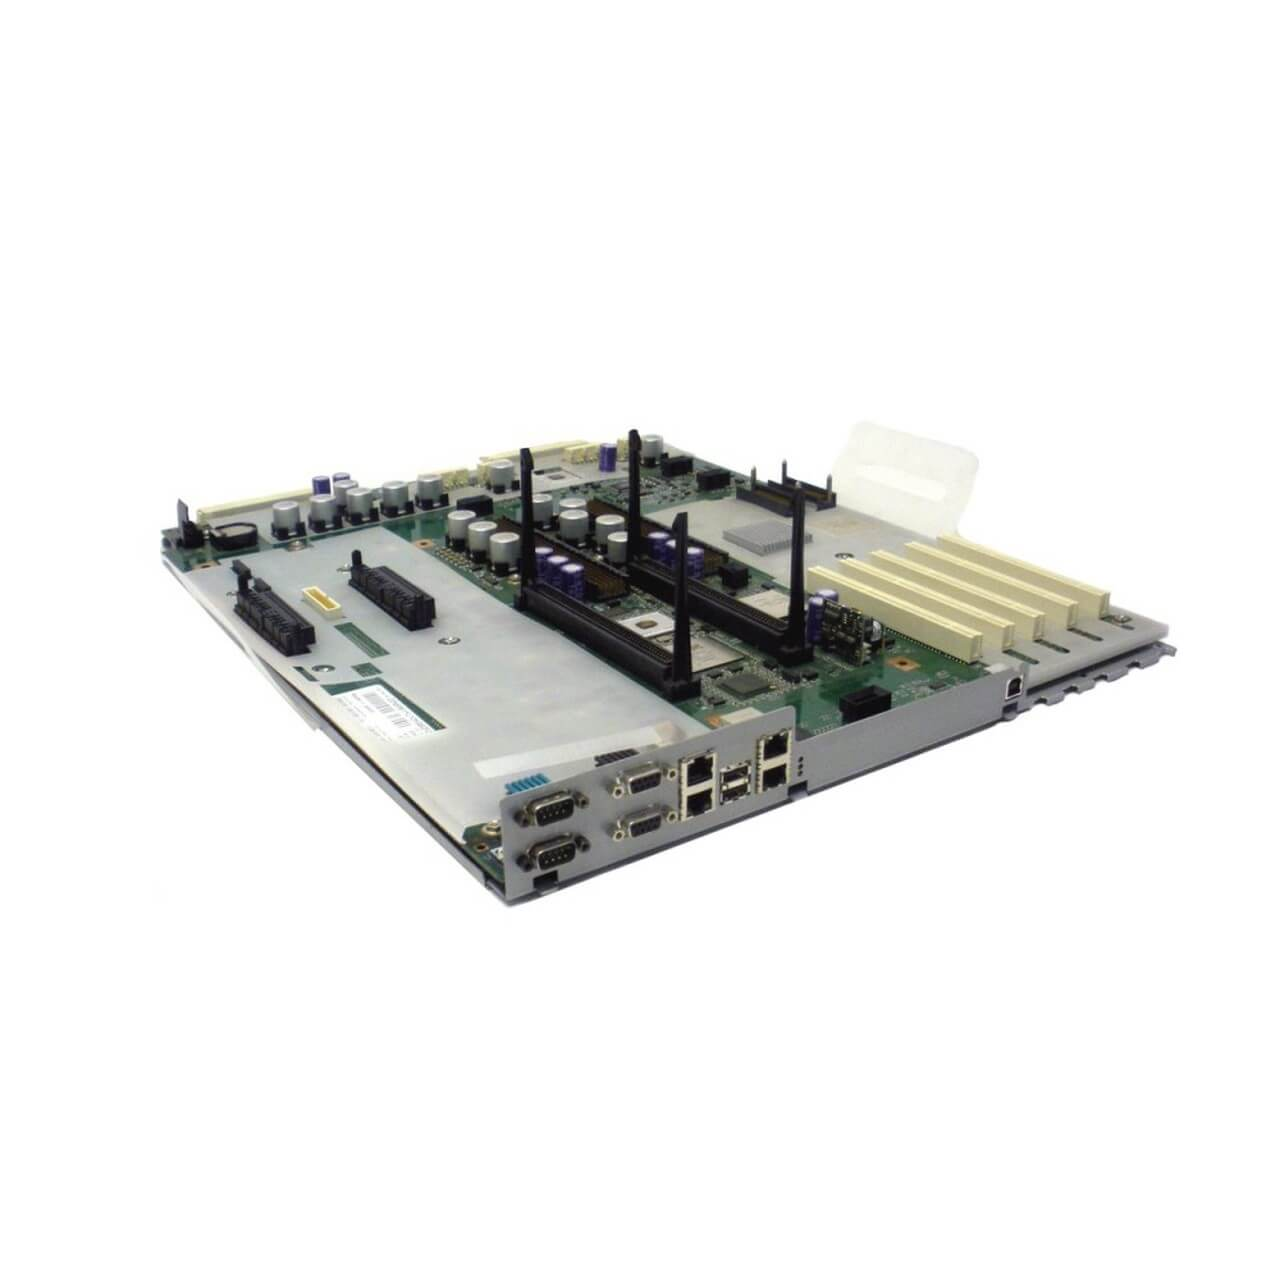 Buy & save on refurbished computer server backplanes from your trusted partners at Flagship Technologies.